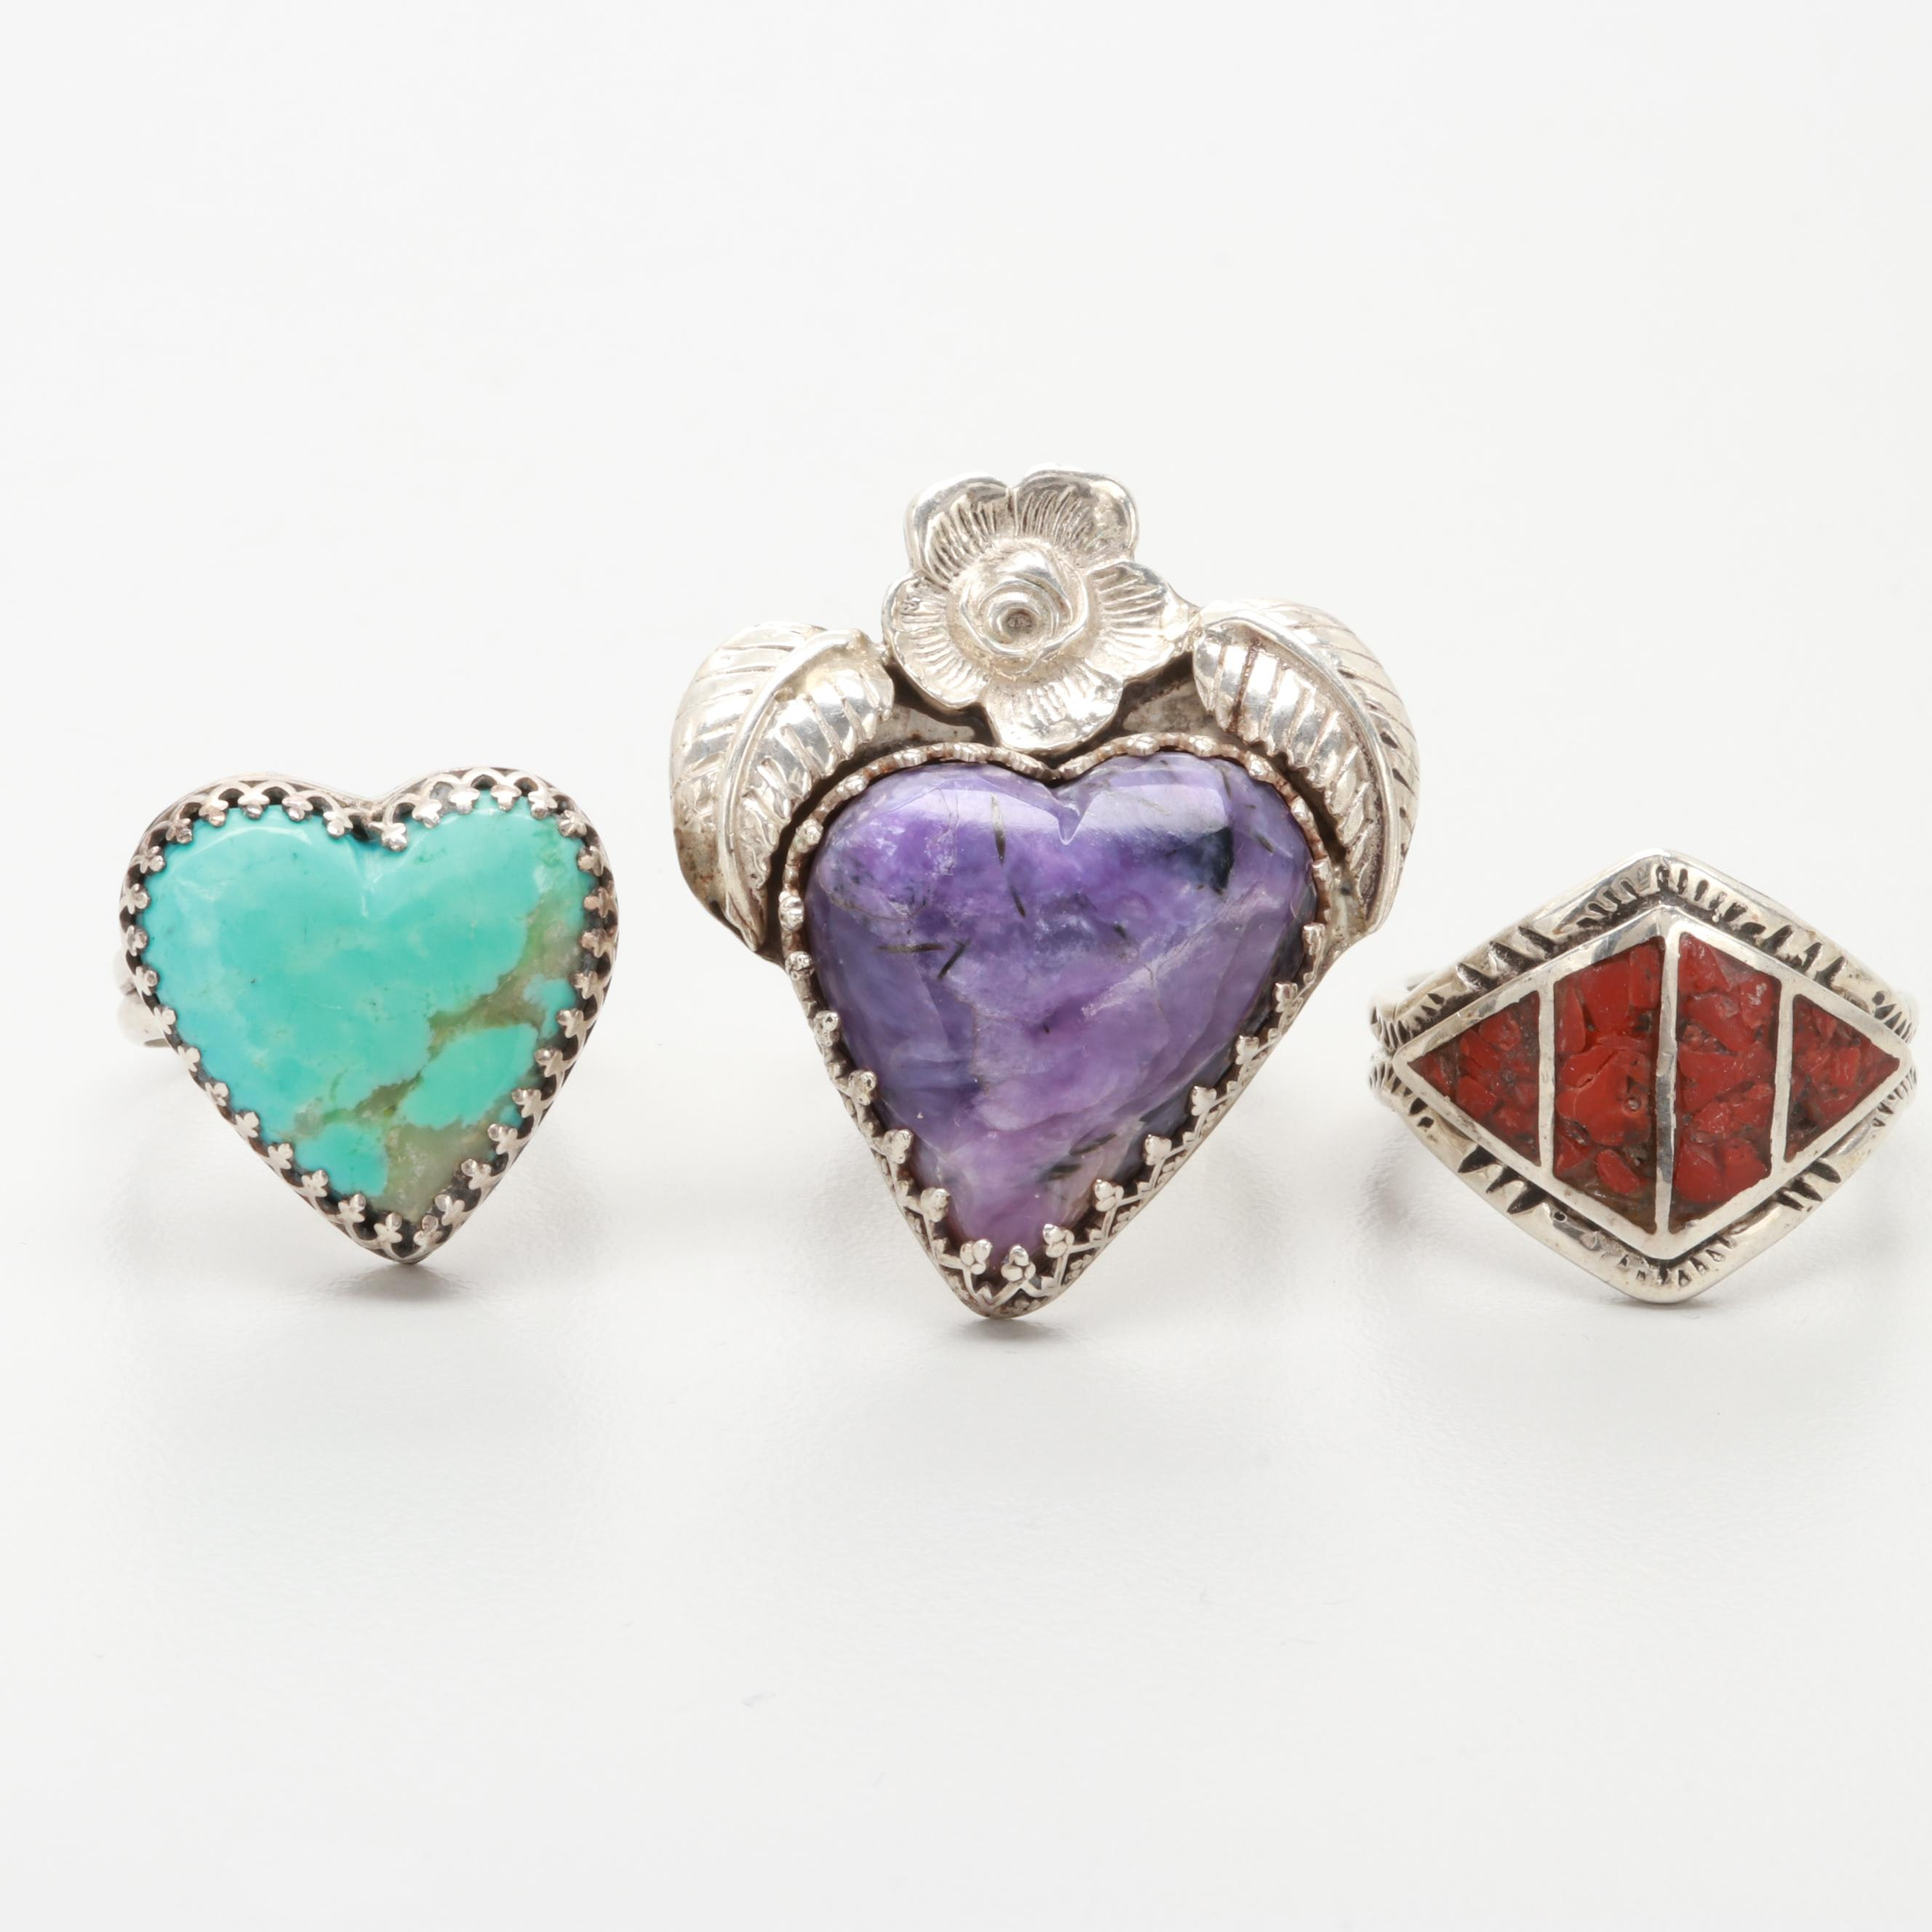 Sterling Silver Turquoise, Chip Stone in Resin and Charoite Rings